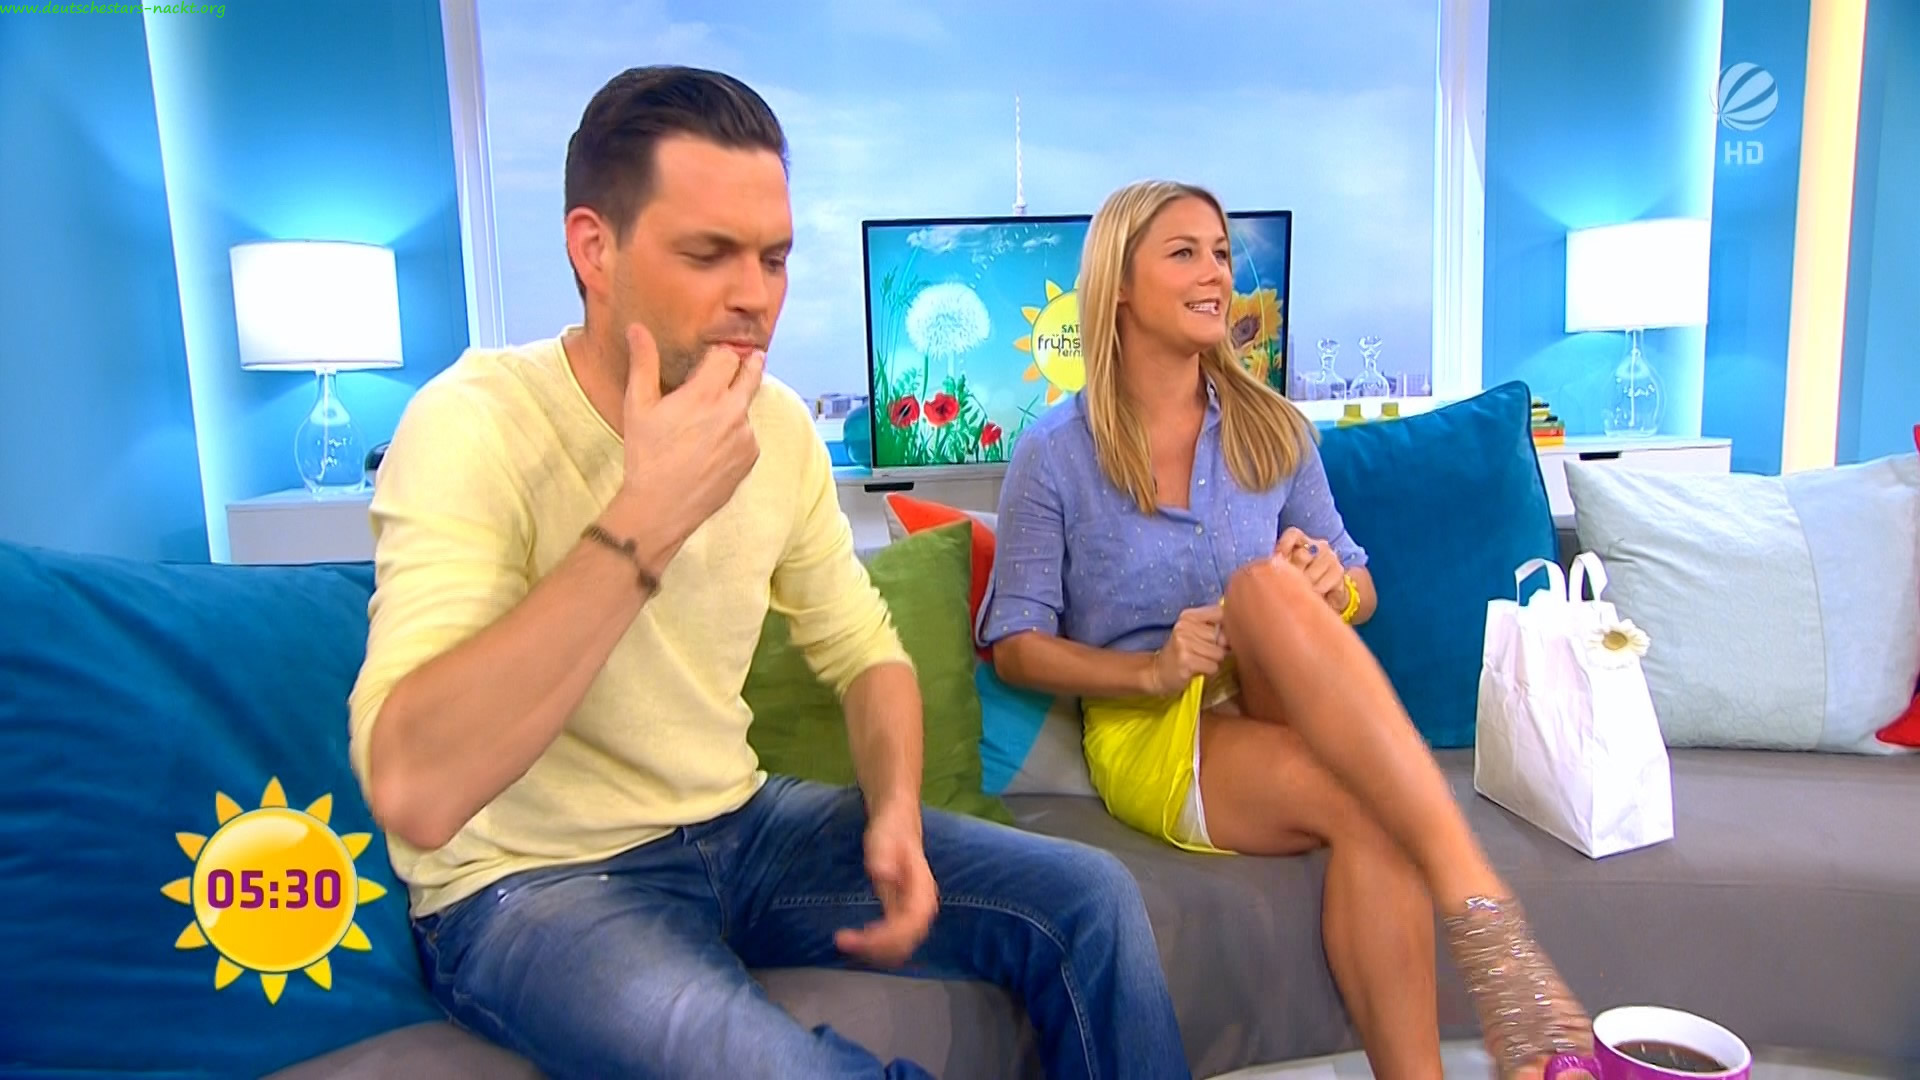 image Marlene lufen german tv host mega upskirt